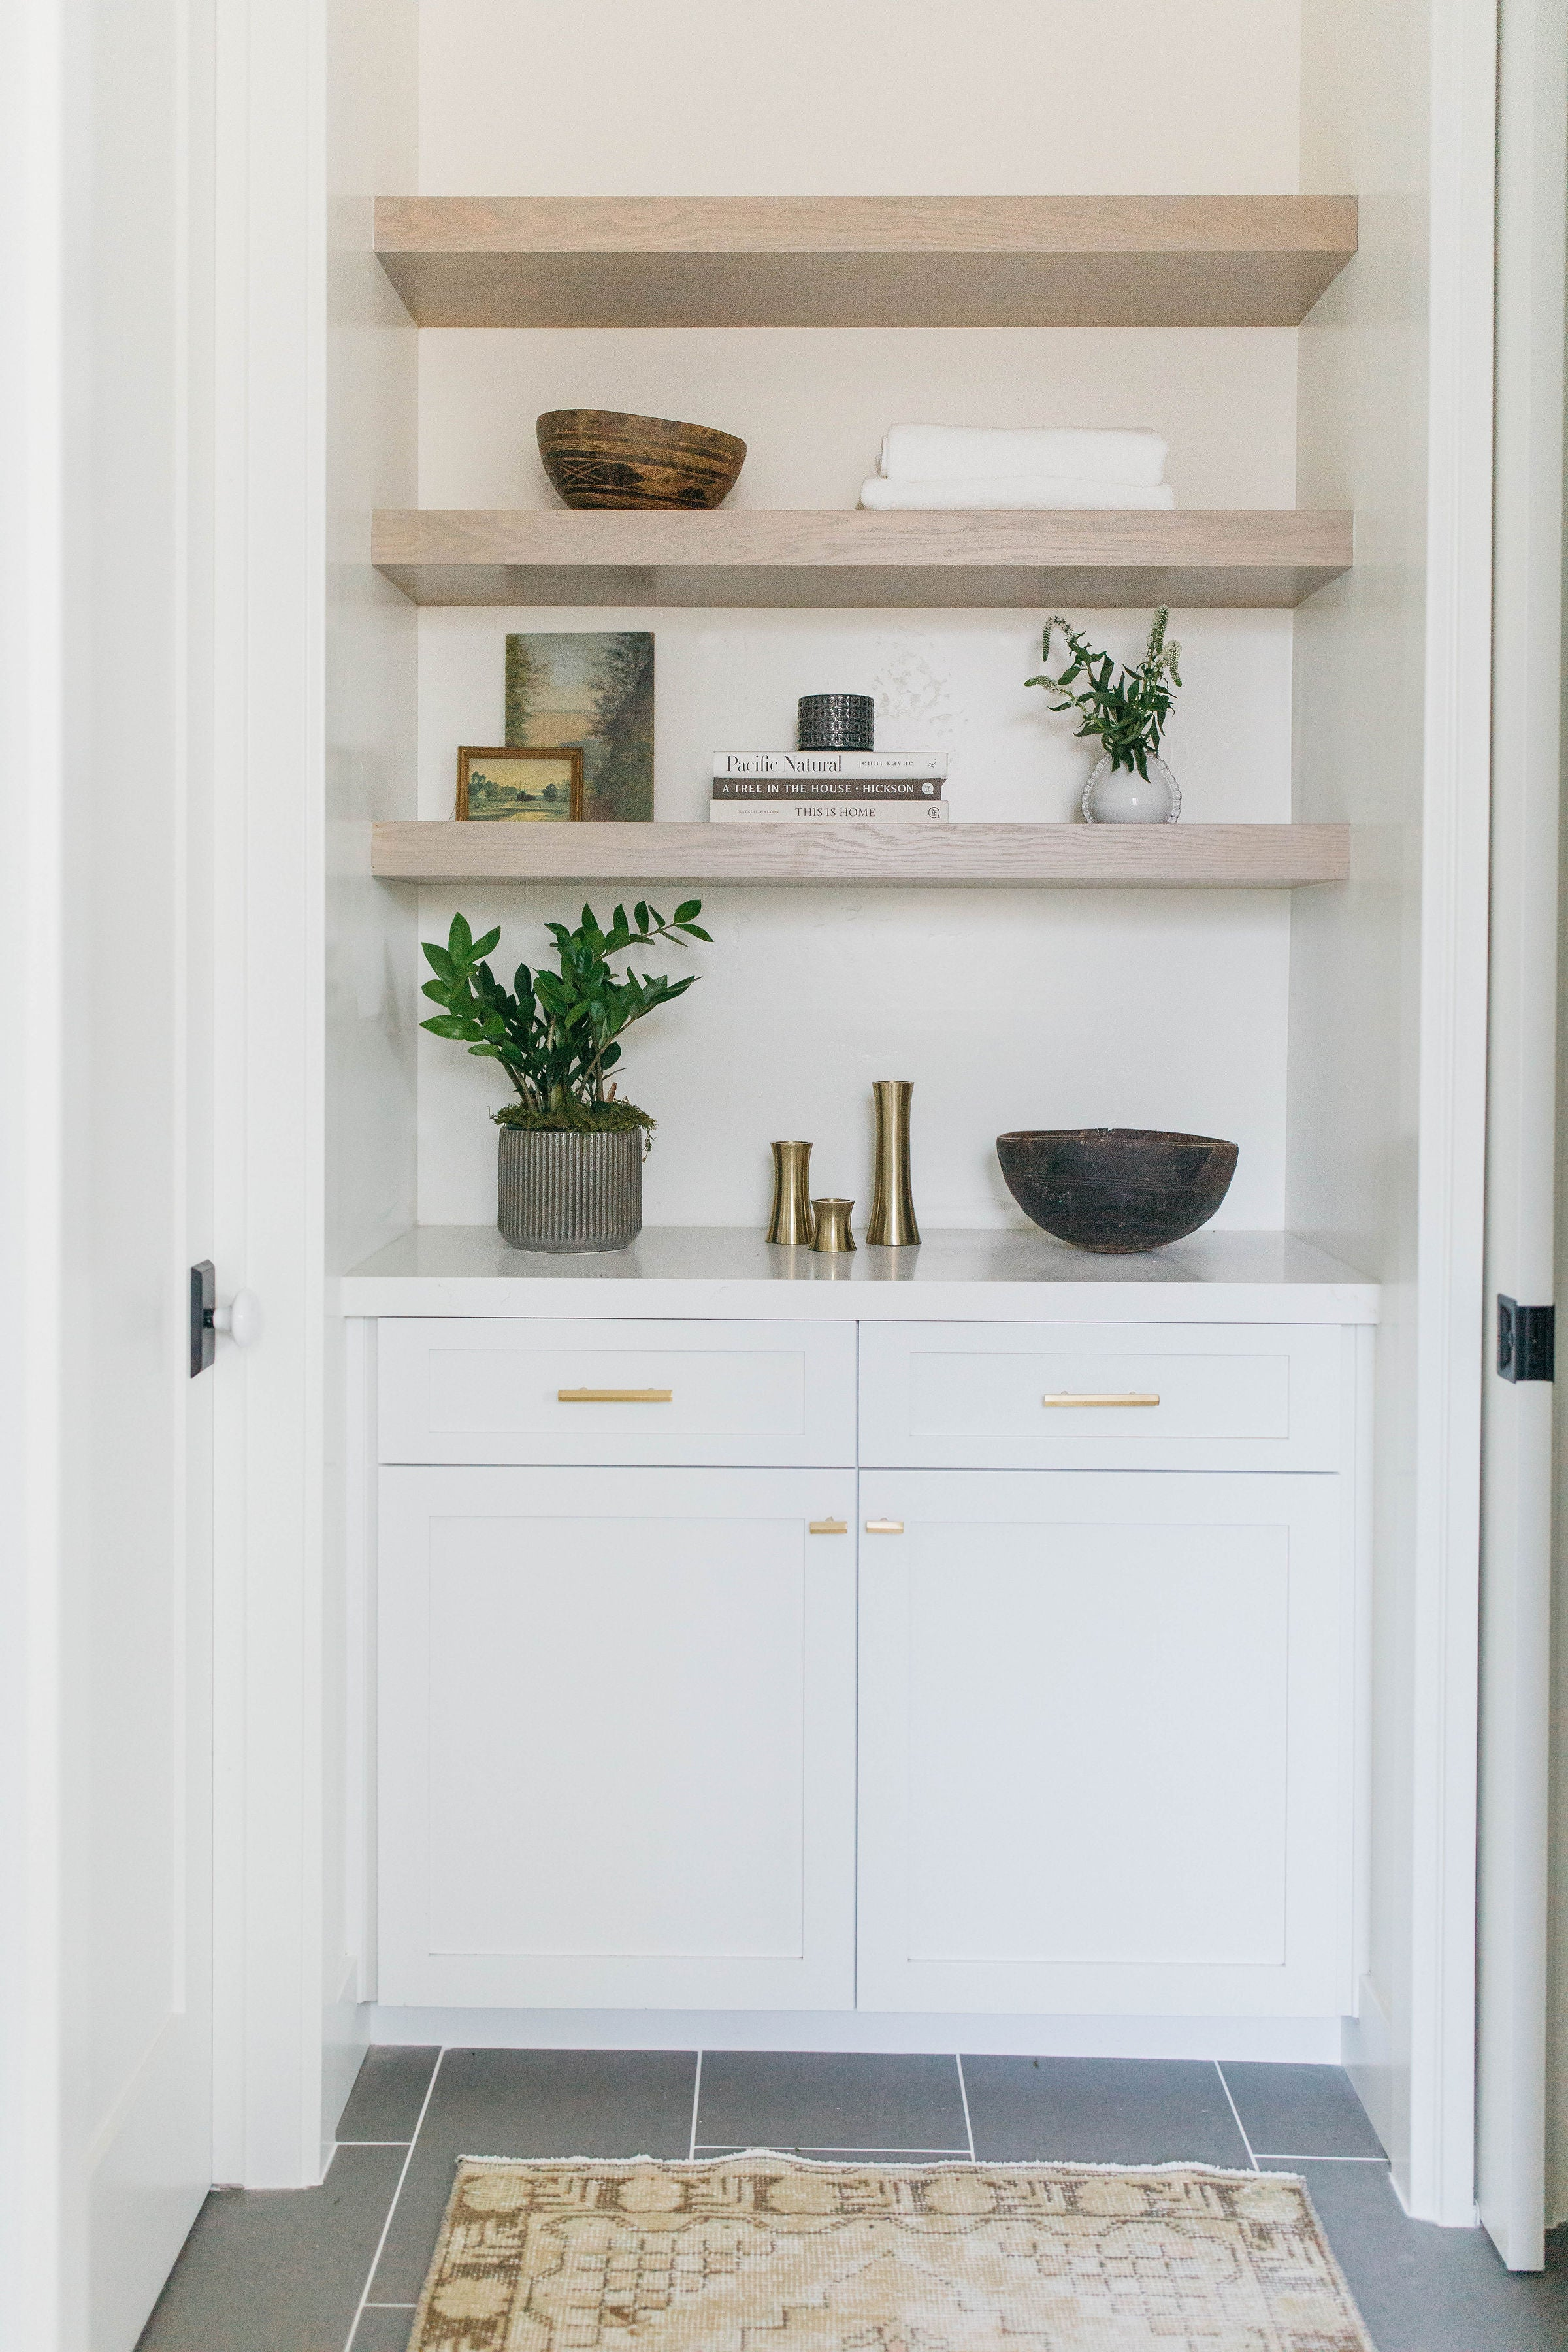 Albion project greige design shop + interiors Point Loma San Diego California interior design master bathroom open shelves linen closet